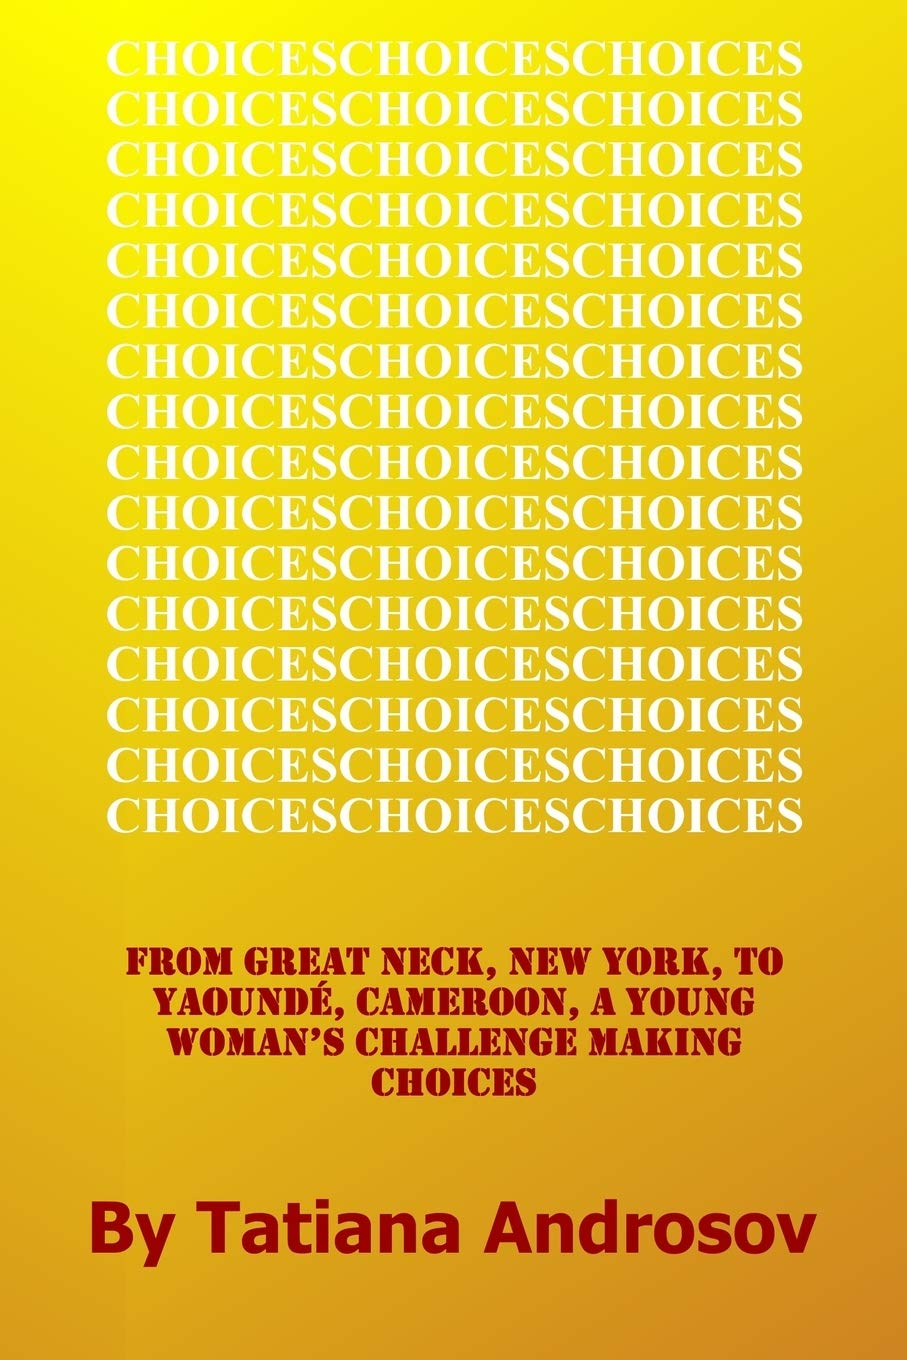 Cover of Choices: From Great Neck, NY to Yaounde, Cameroon, a Young Woman's Challenge Making Choices